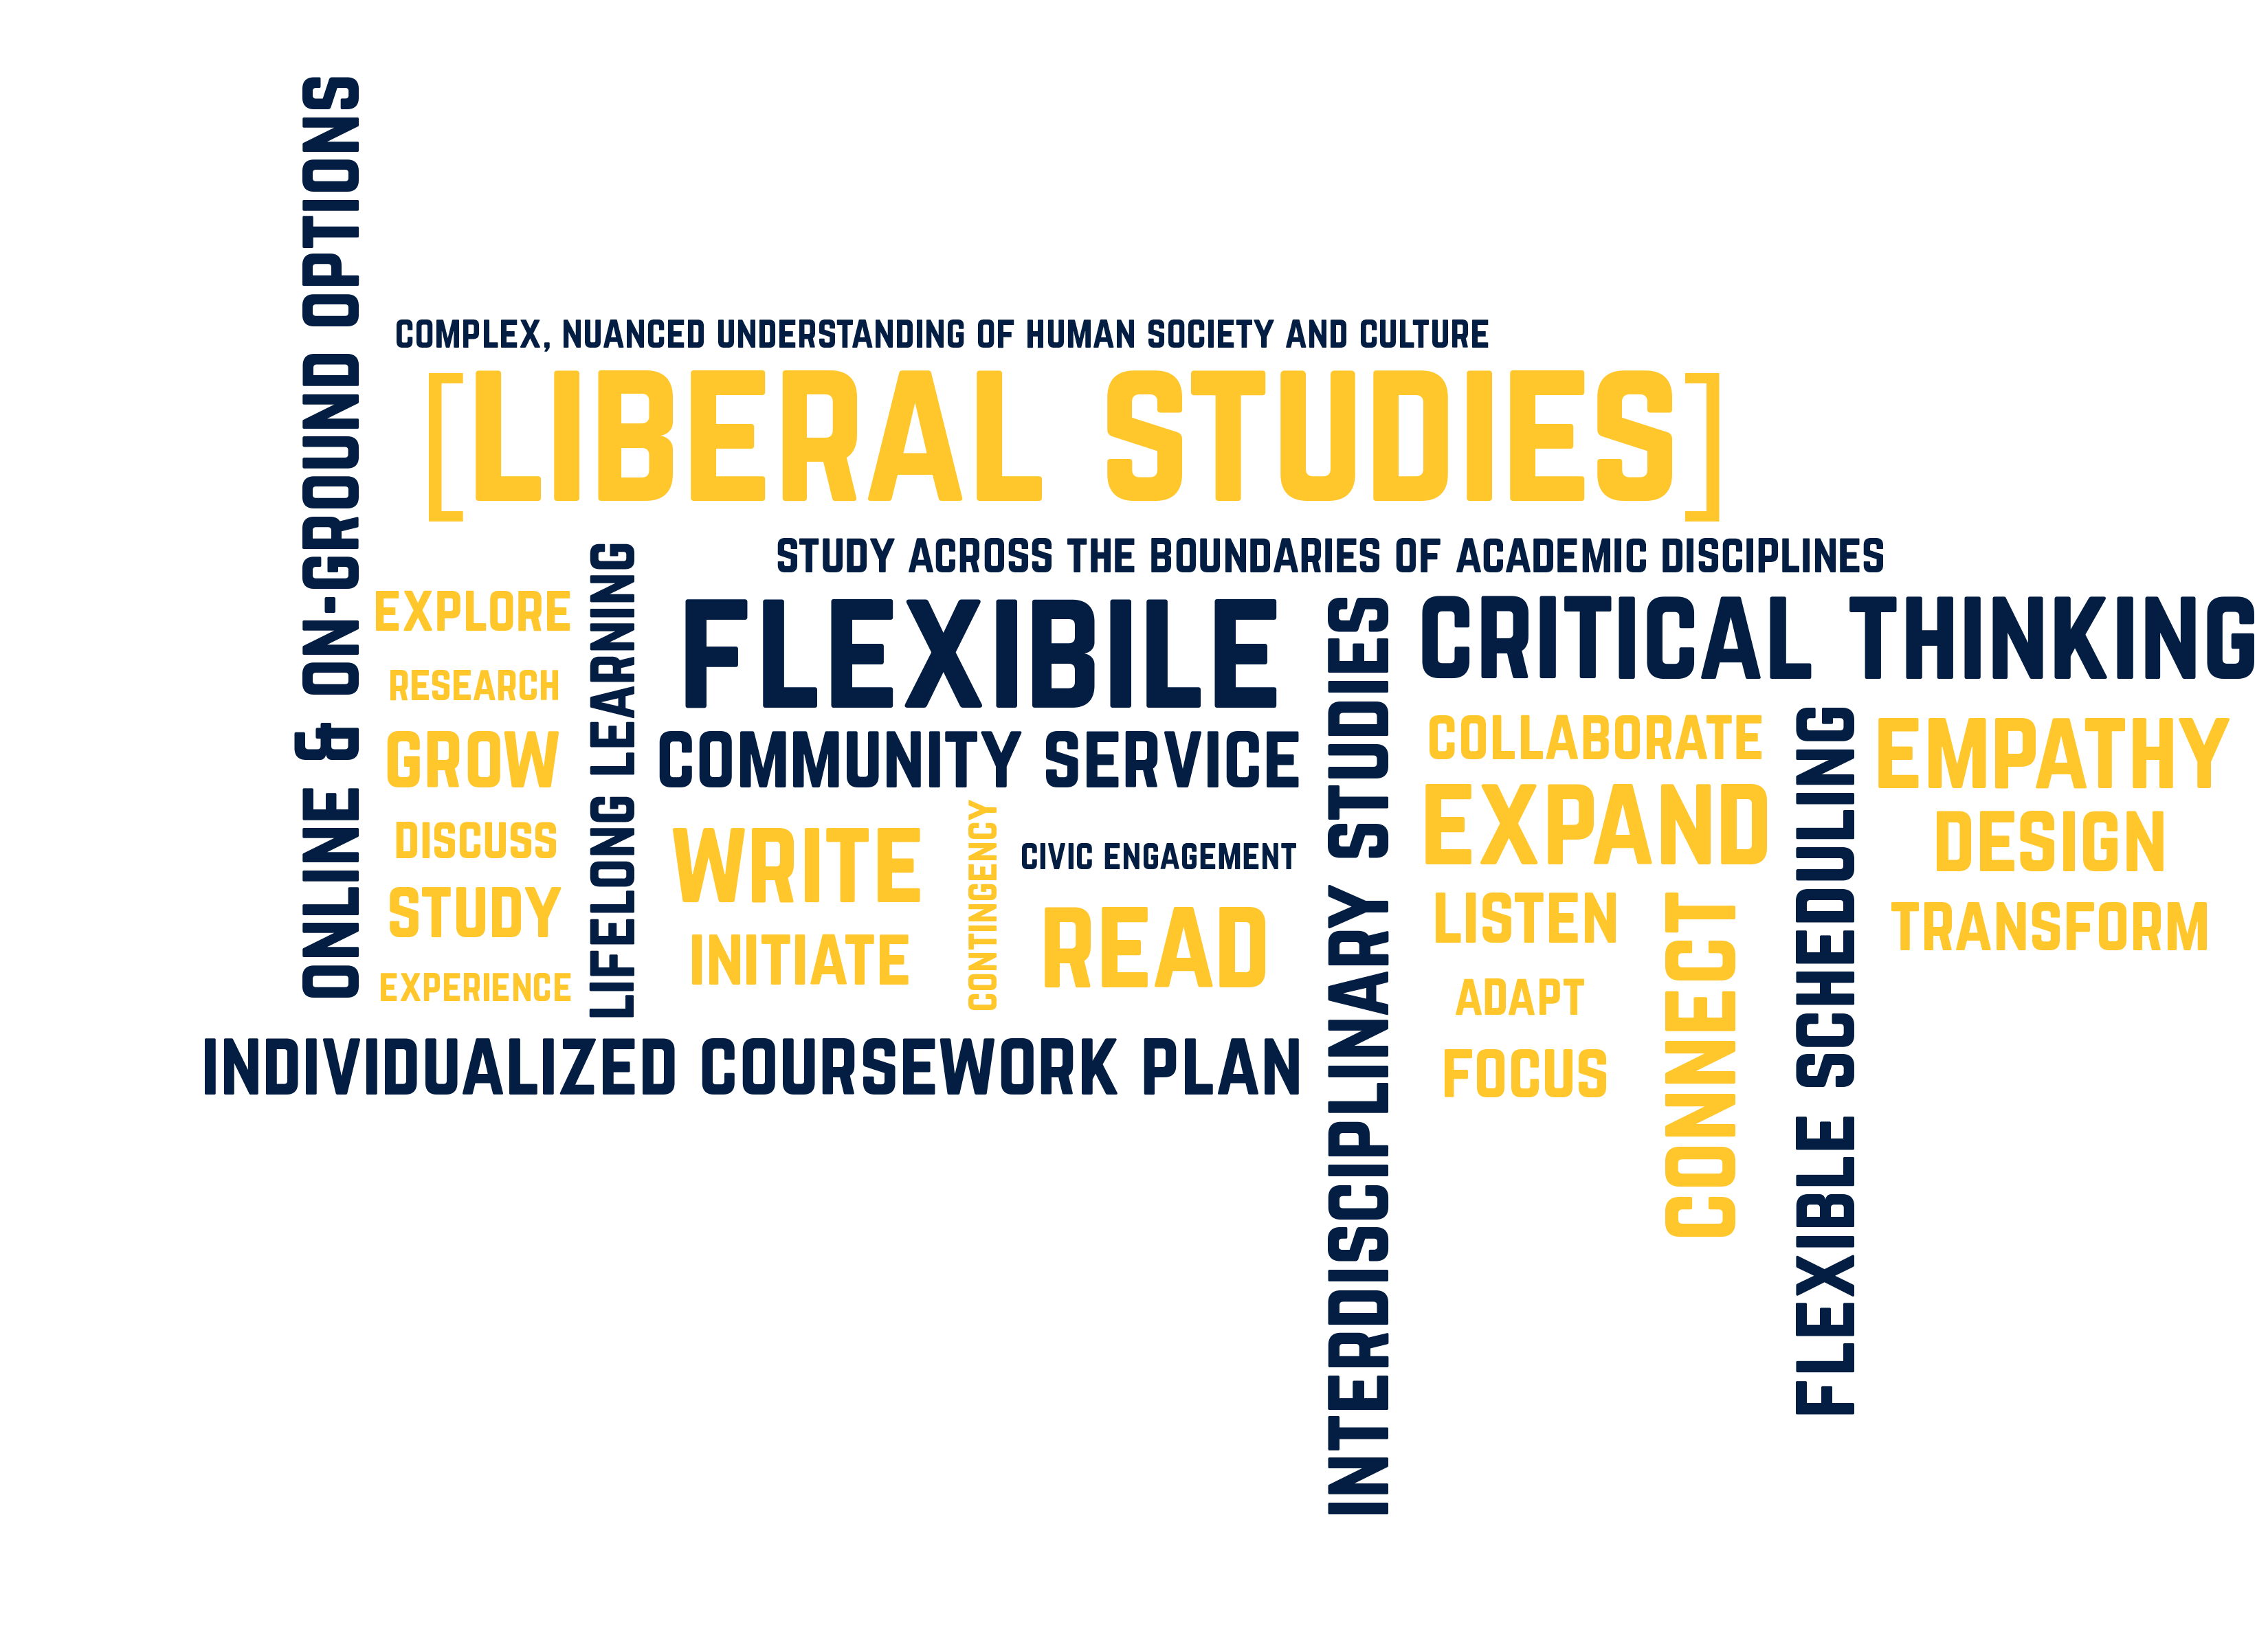 Liberal Studies: Complex, nuanced understanding of human society and culture; study across the boundaries of academic disciplines; individualized coursework plan; civic engagement; inetrdisciplinary studies; critical thinking; lifelong learning; flexible scheduling; online and on-ground options; explore; research; growth; discussion; study; experience; community service; skills; adaptability; education; read; collaborate; listen; expand; initiative; focus; connect.